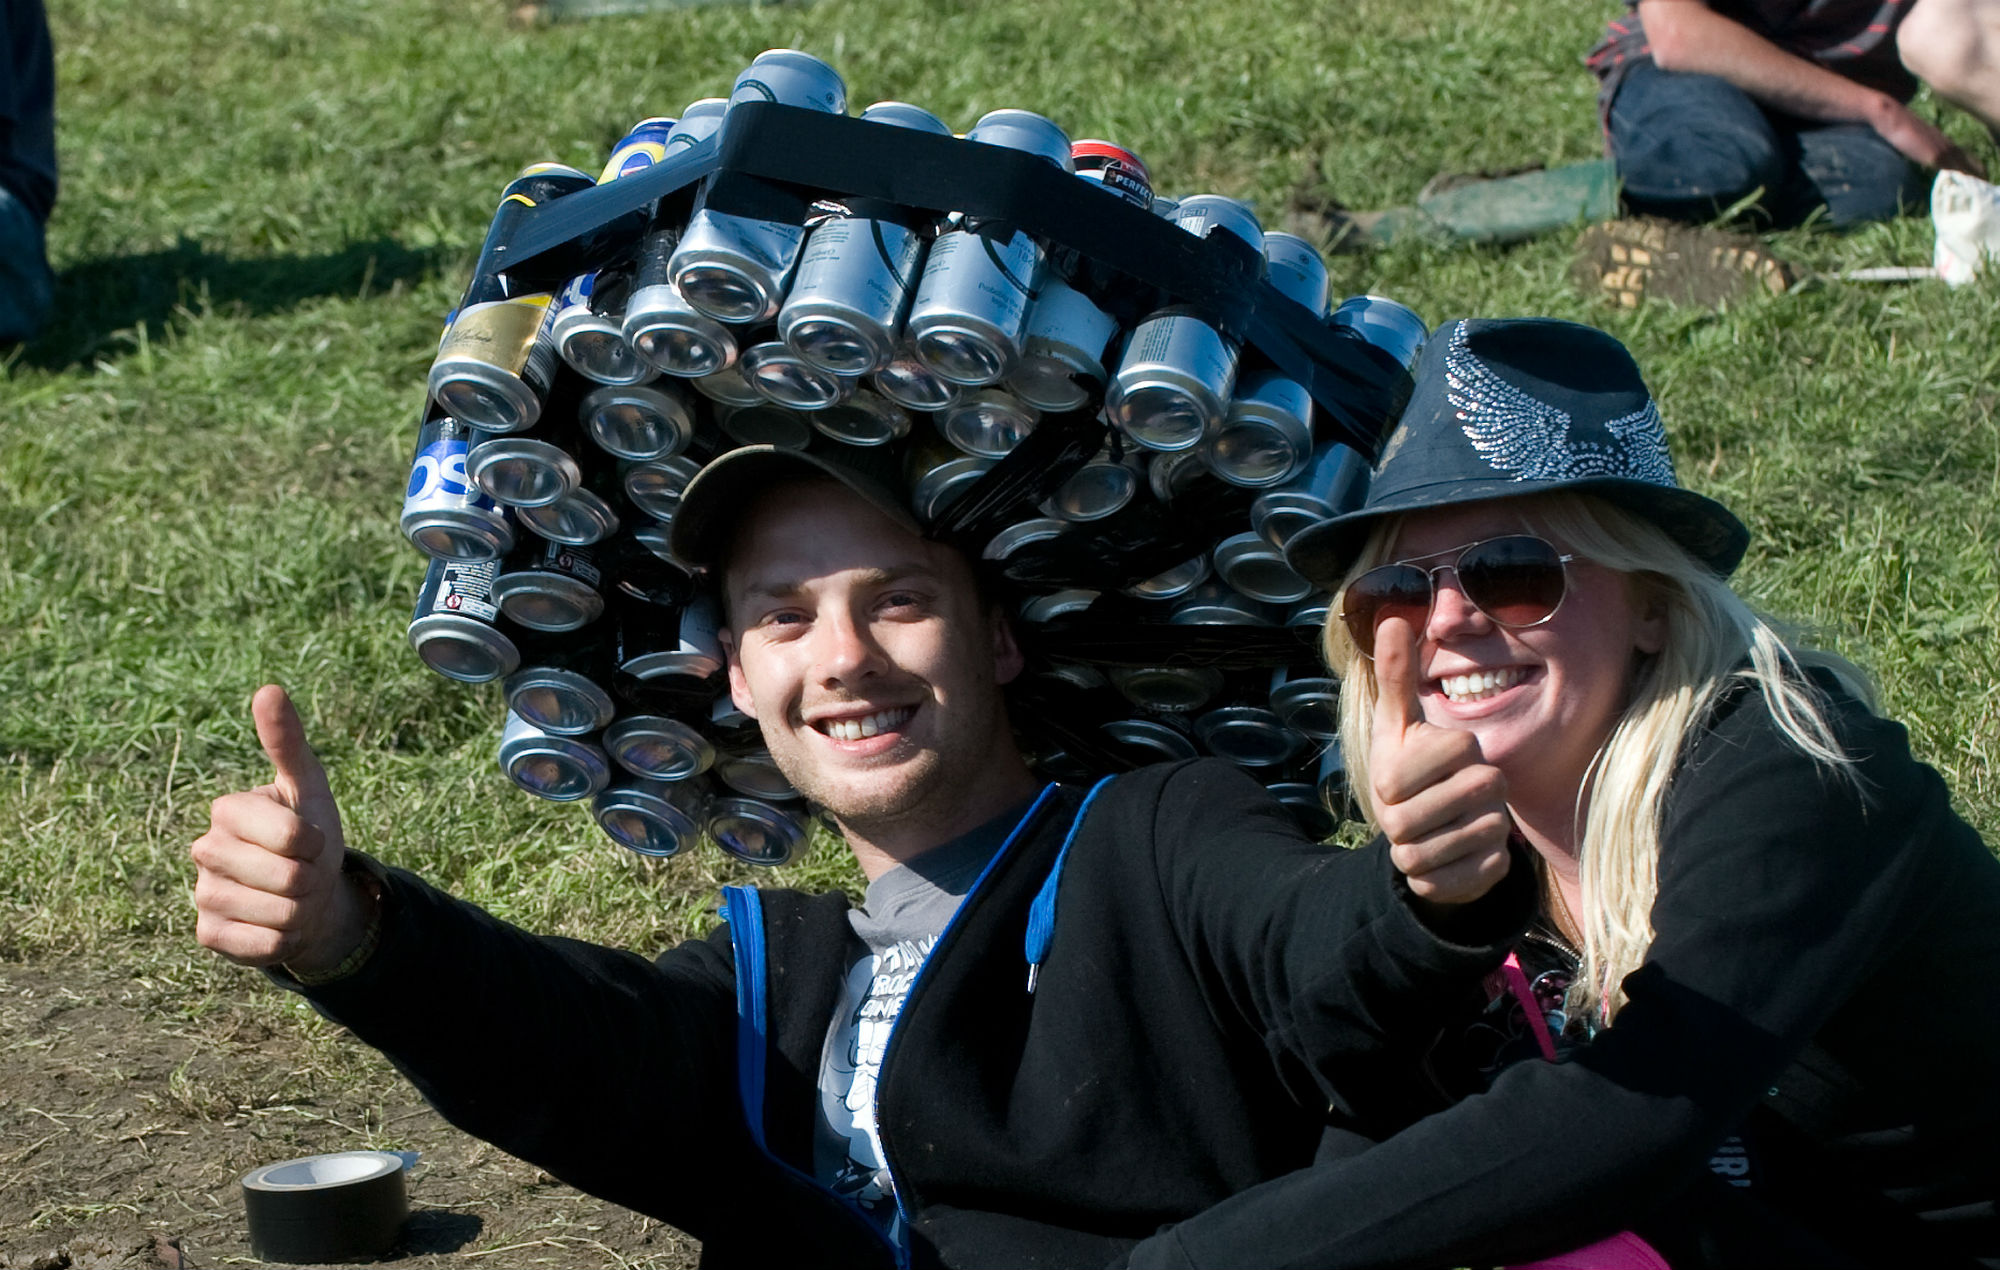 Glastonbury may be ordered to restrict amount of alcohol you can bring